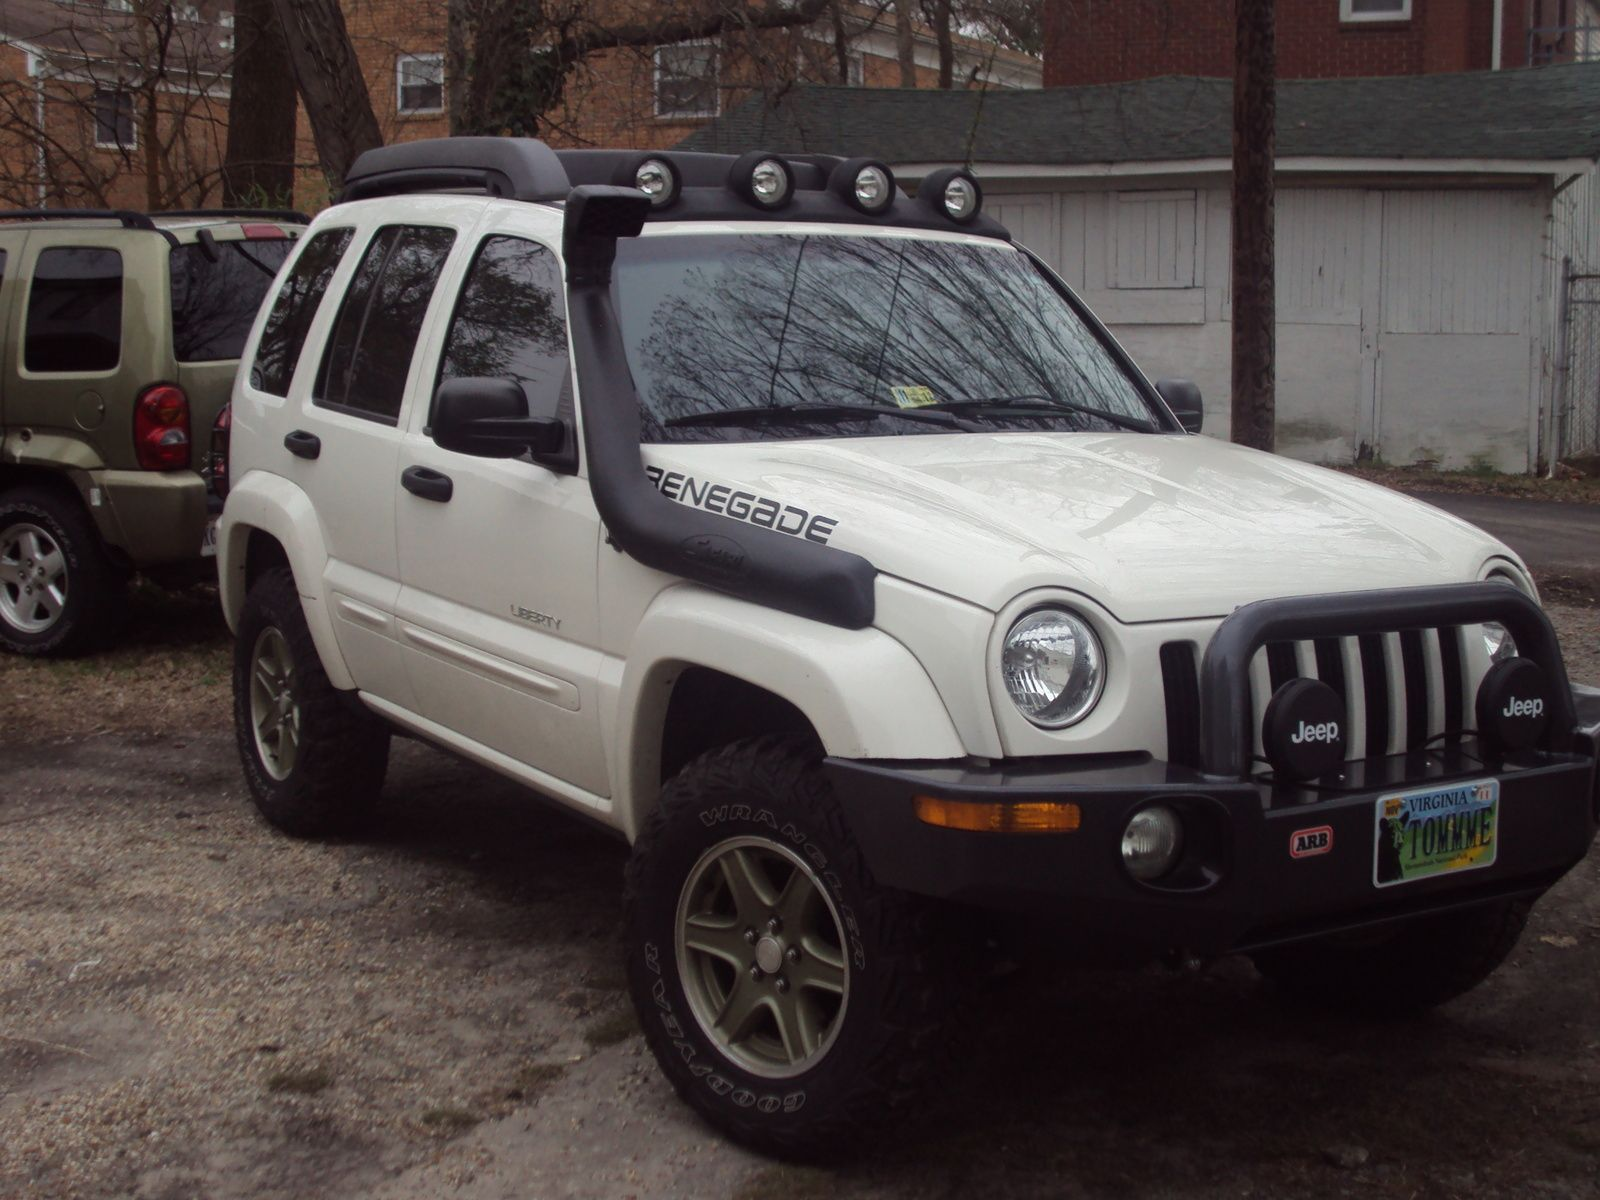 2003 Jeep Liberty Limited 4WD (With images) Jeep liberty